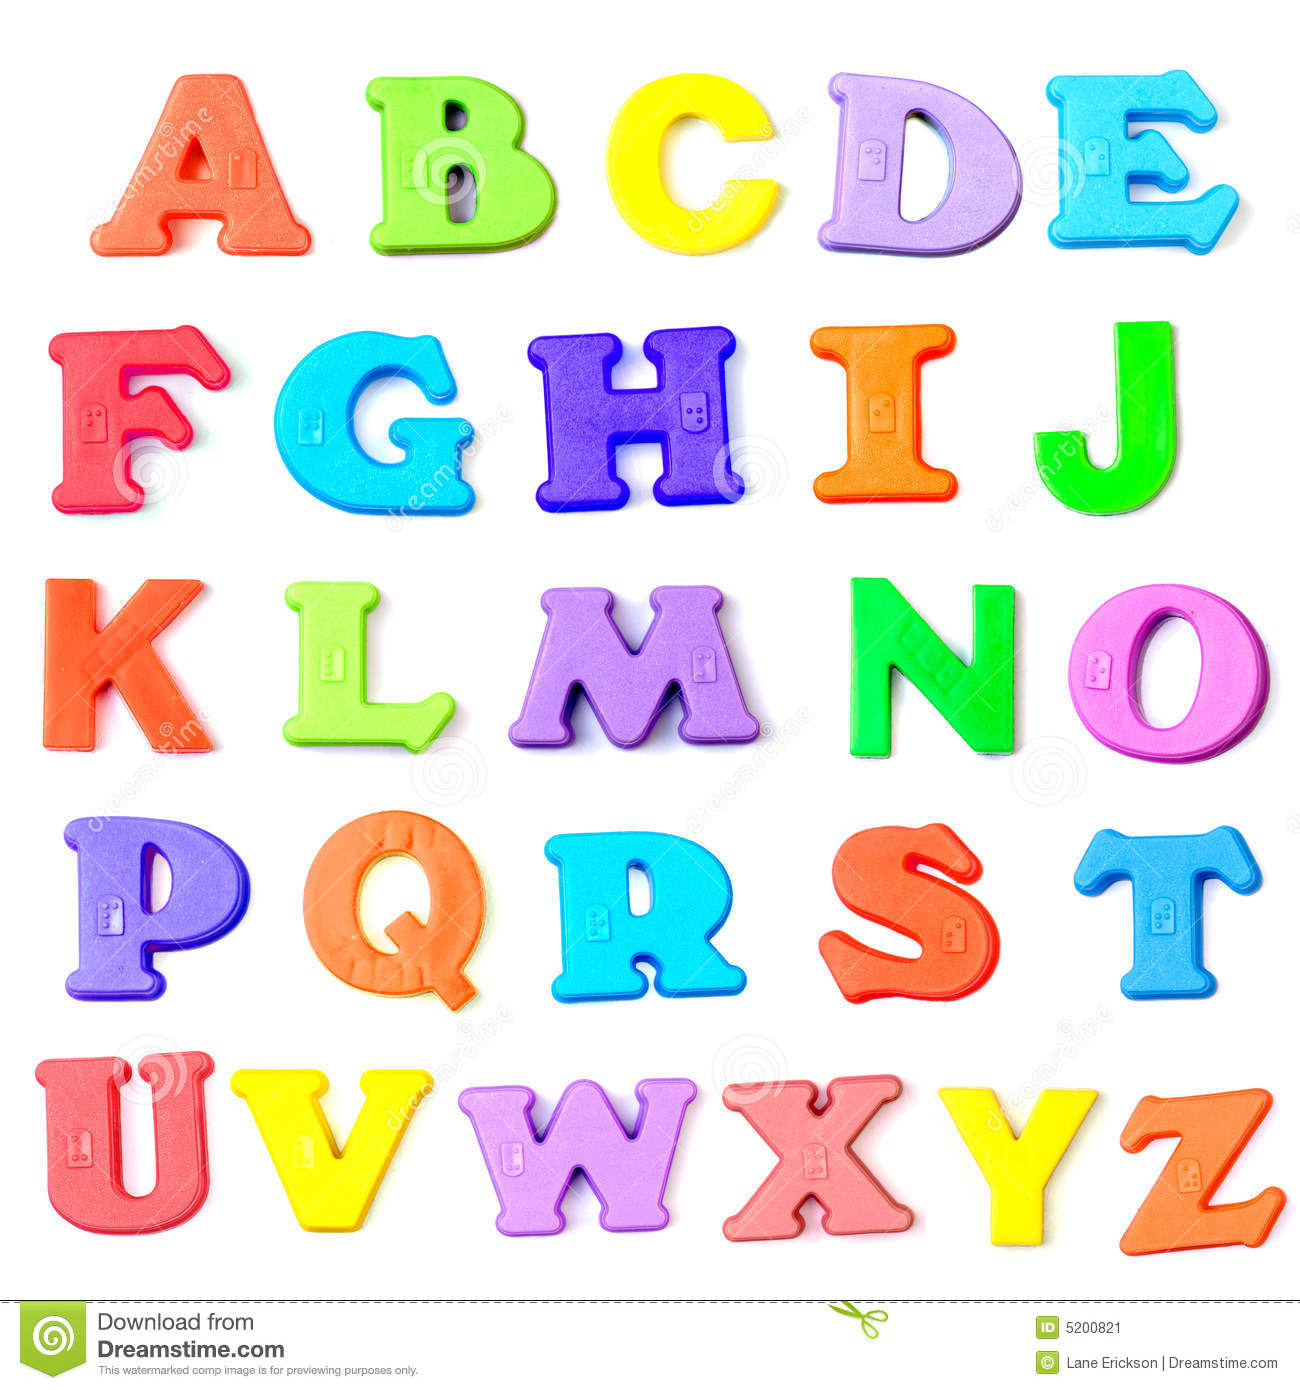 Worksheet Alphabets Letters letters in the alphabet anoz digimerge net alphabet